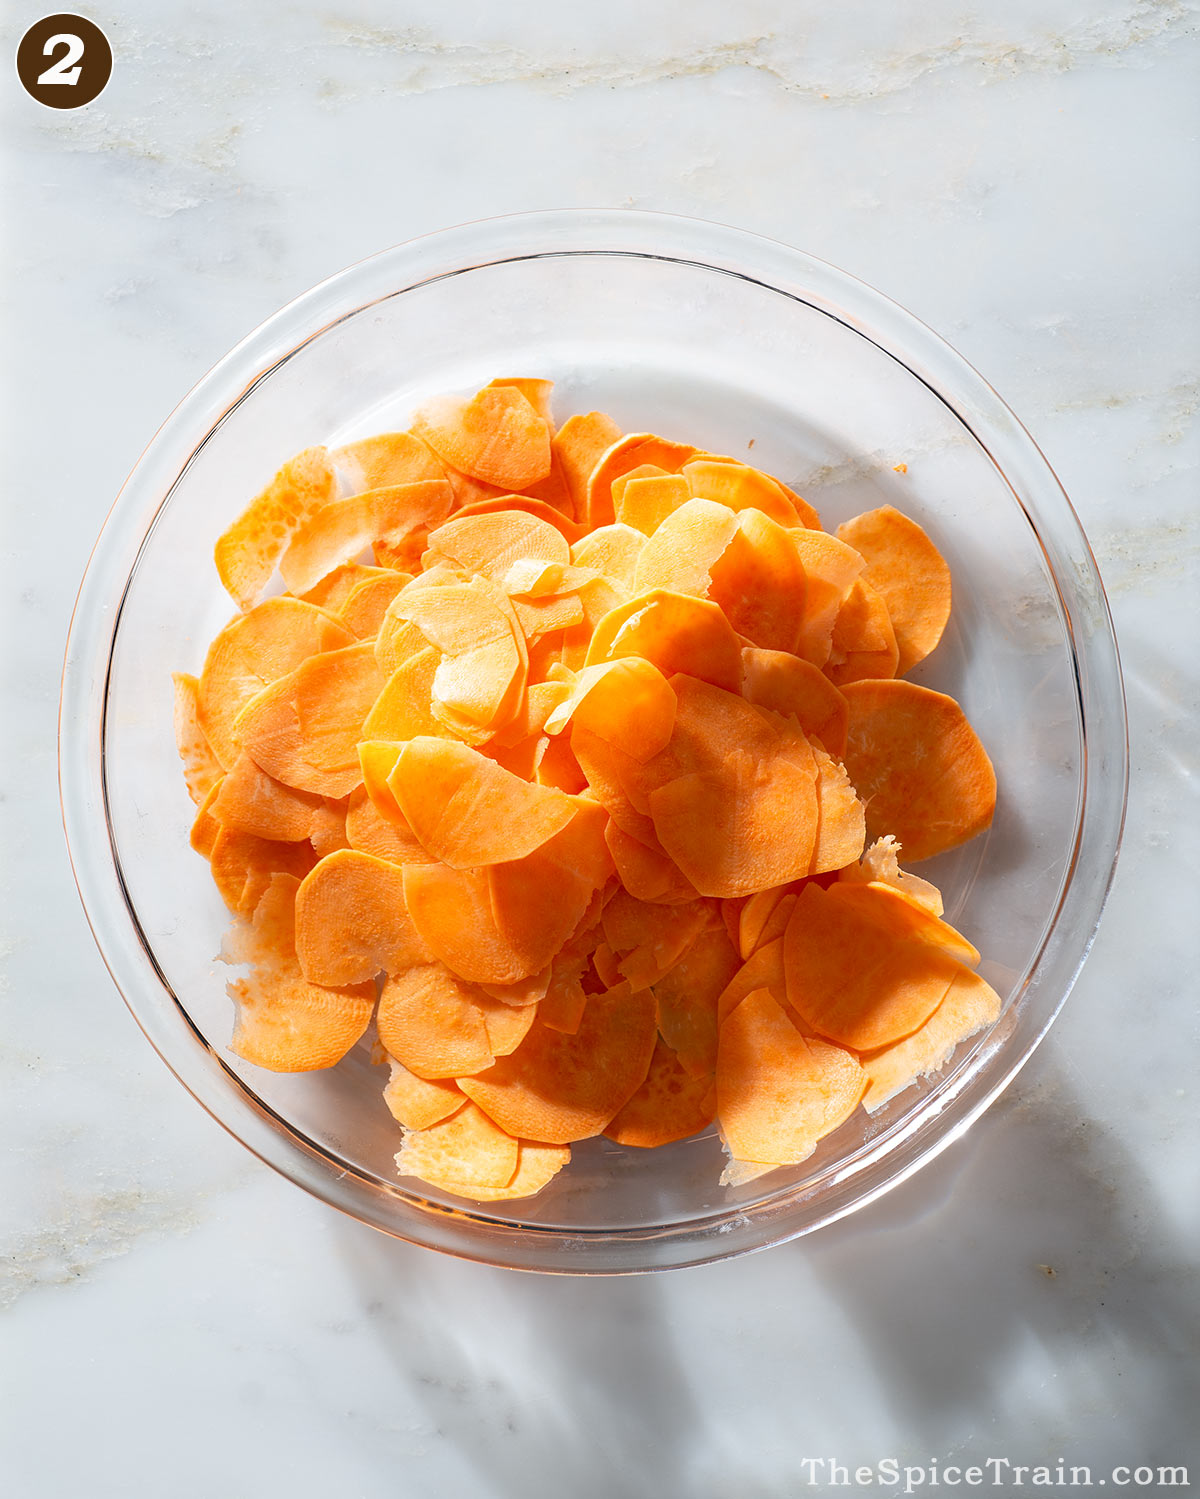 Thin sweet potato slices.